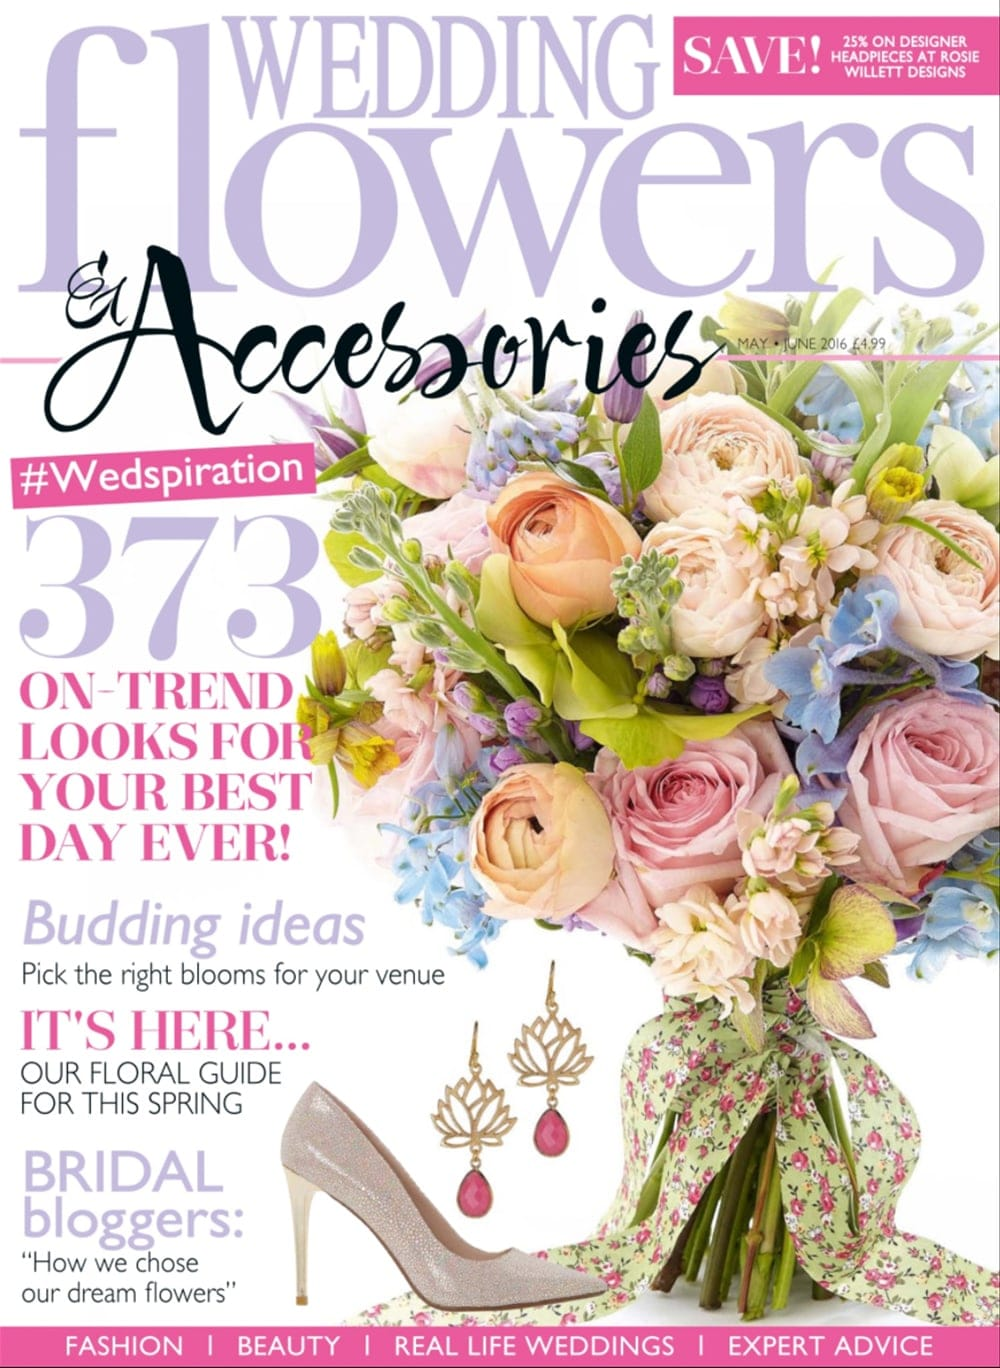 Wedding Flowers Accessories May 2016